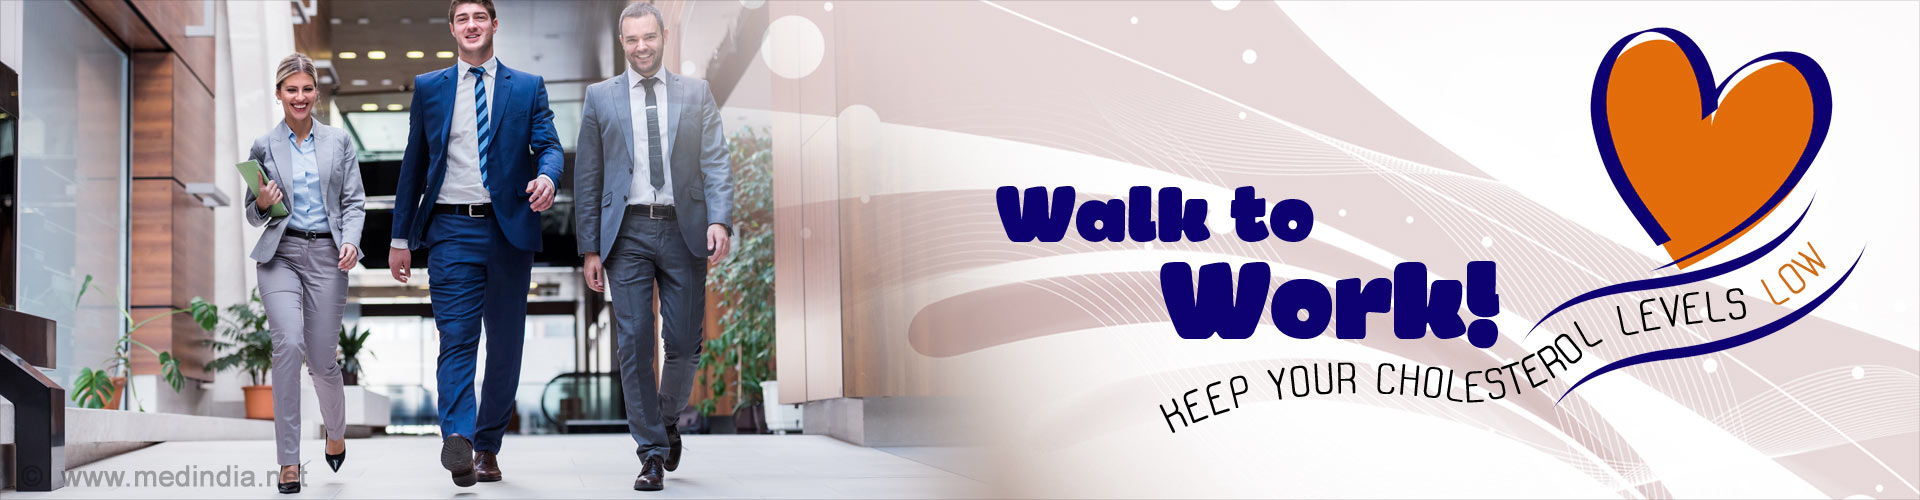 Walk to Work! Keep Your Cholesterol Levels Low